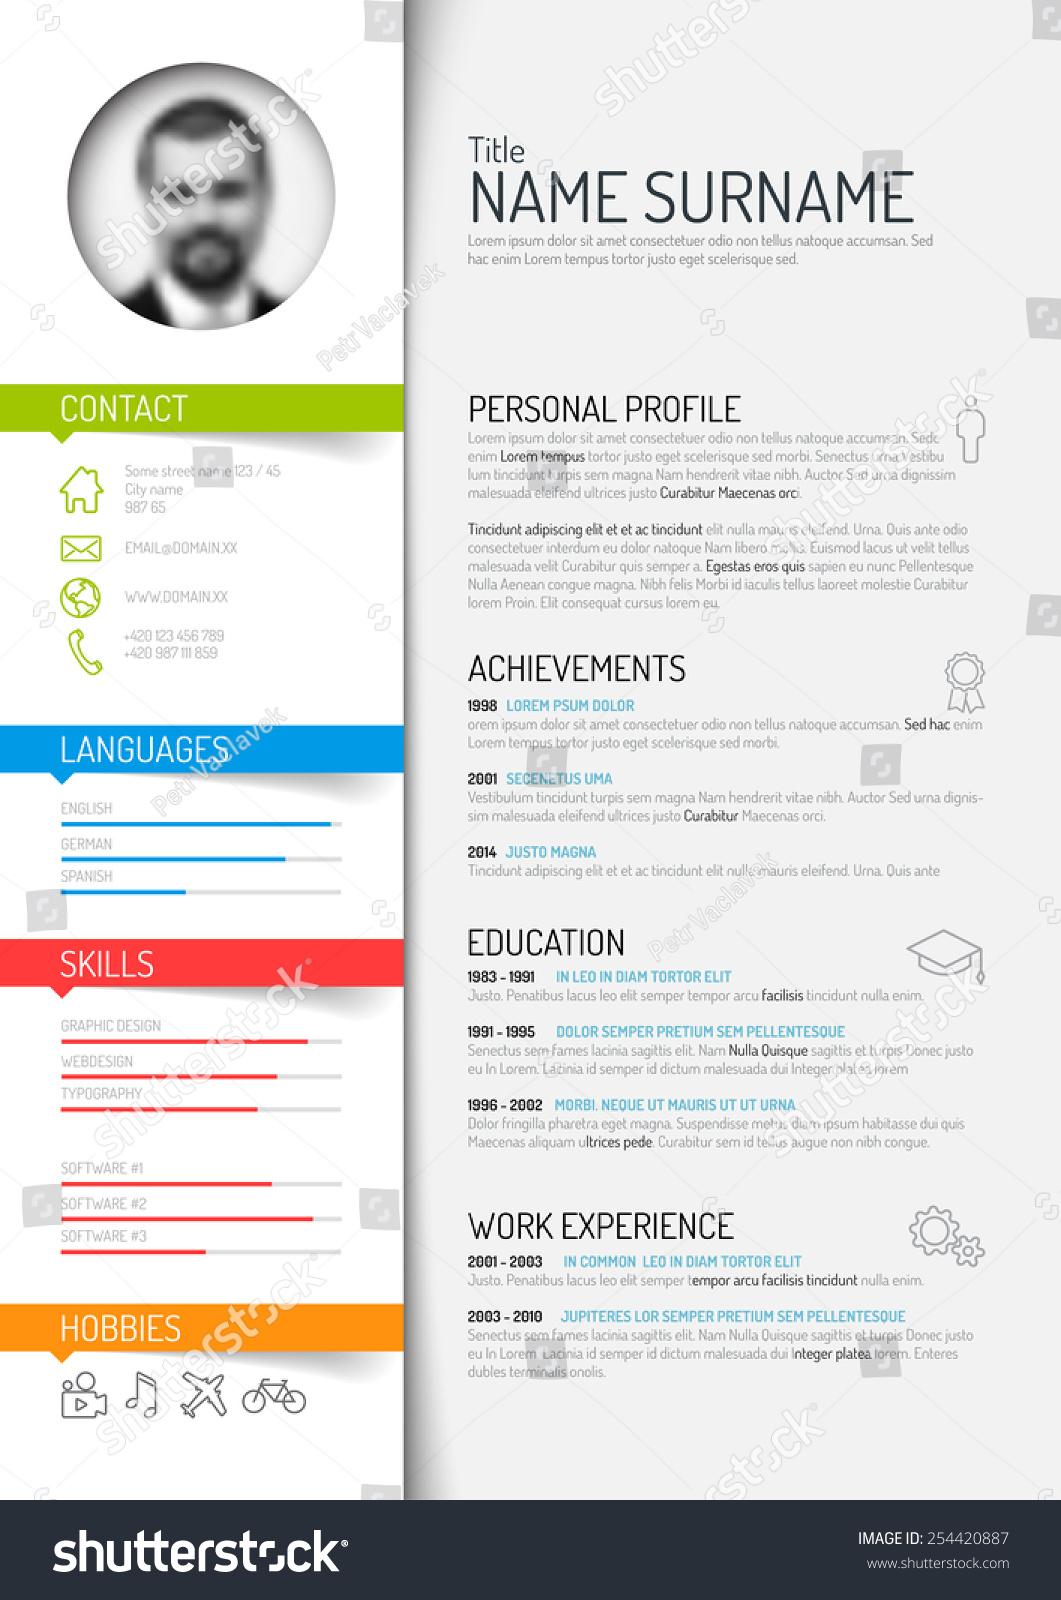 Cv Layout Examples Free Free Cv Writing Tips How To Write A Cv That Wins Vector Minimalist Cv Resume Template Light Stock Vector